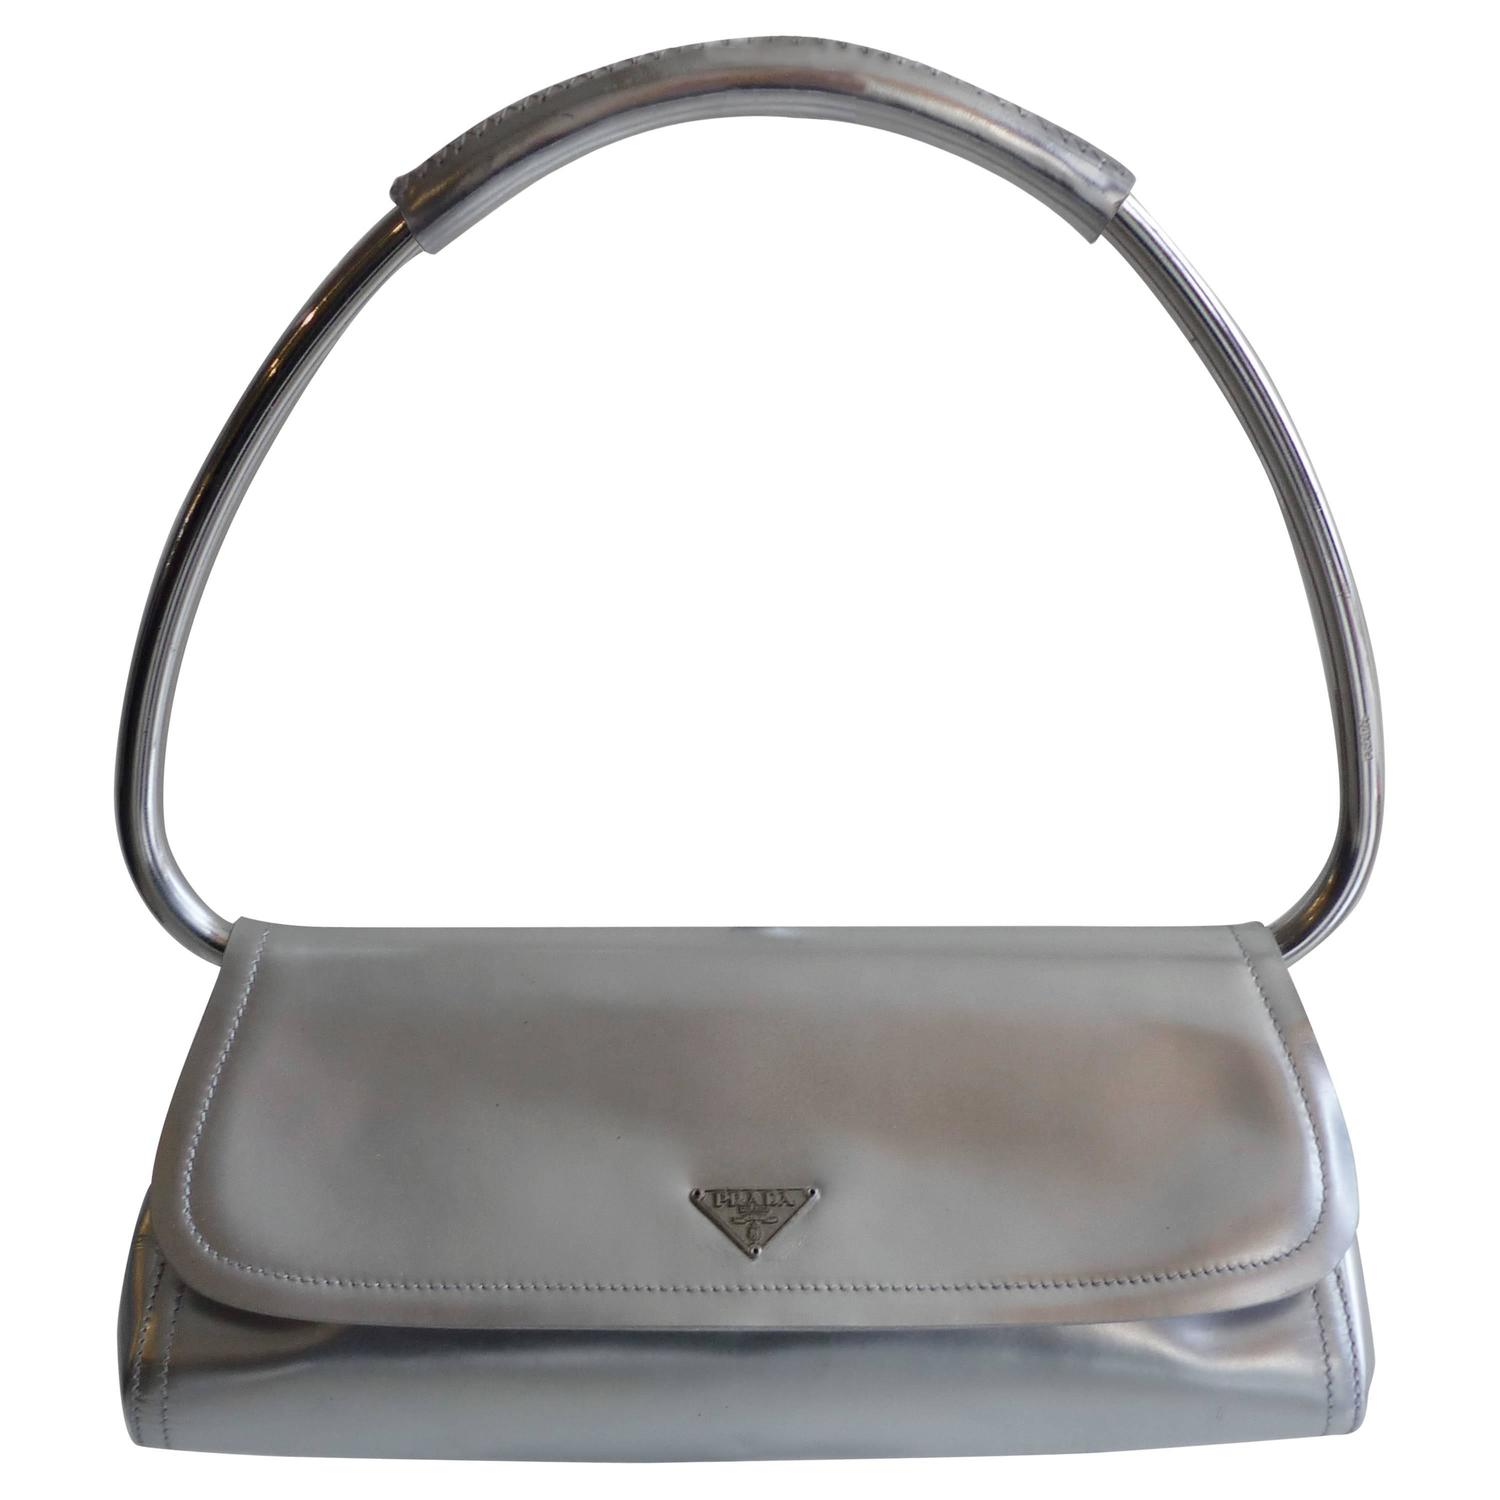 f0dee4a580 prada silver ring handle bag, prada chain bag